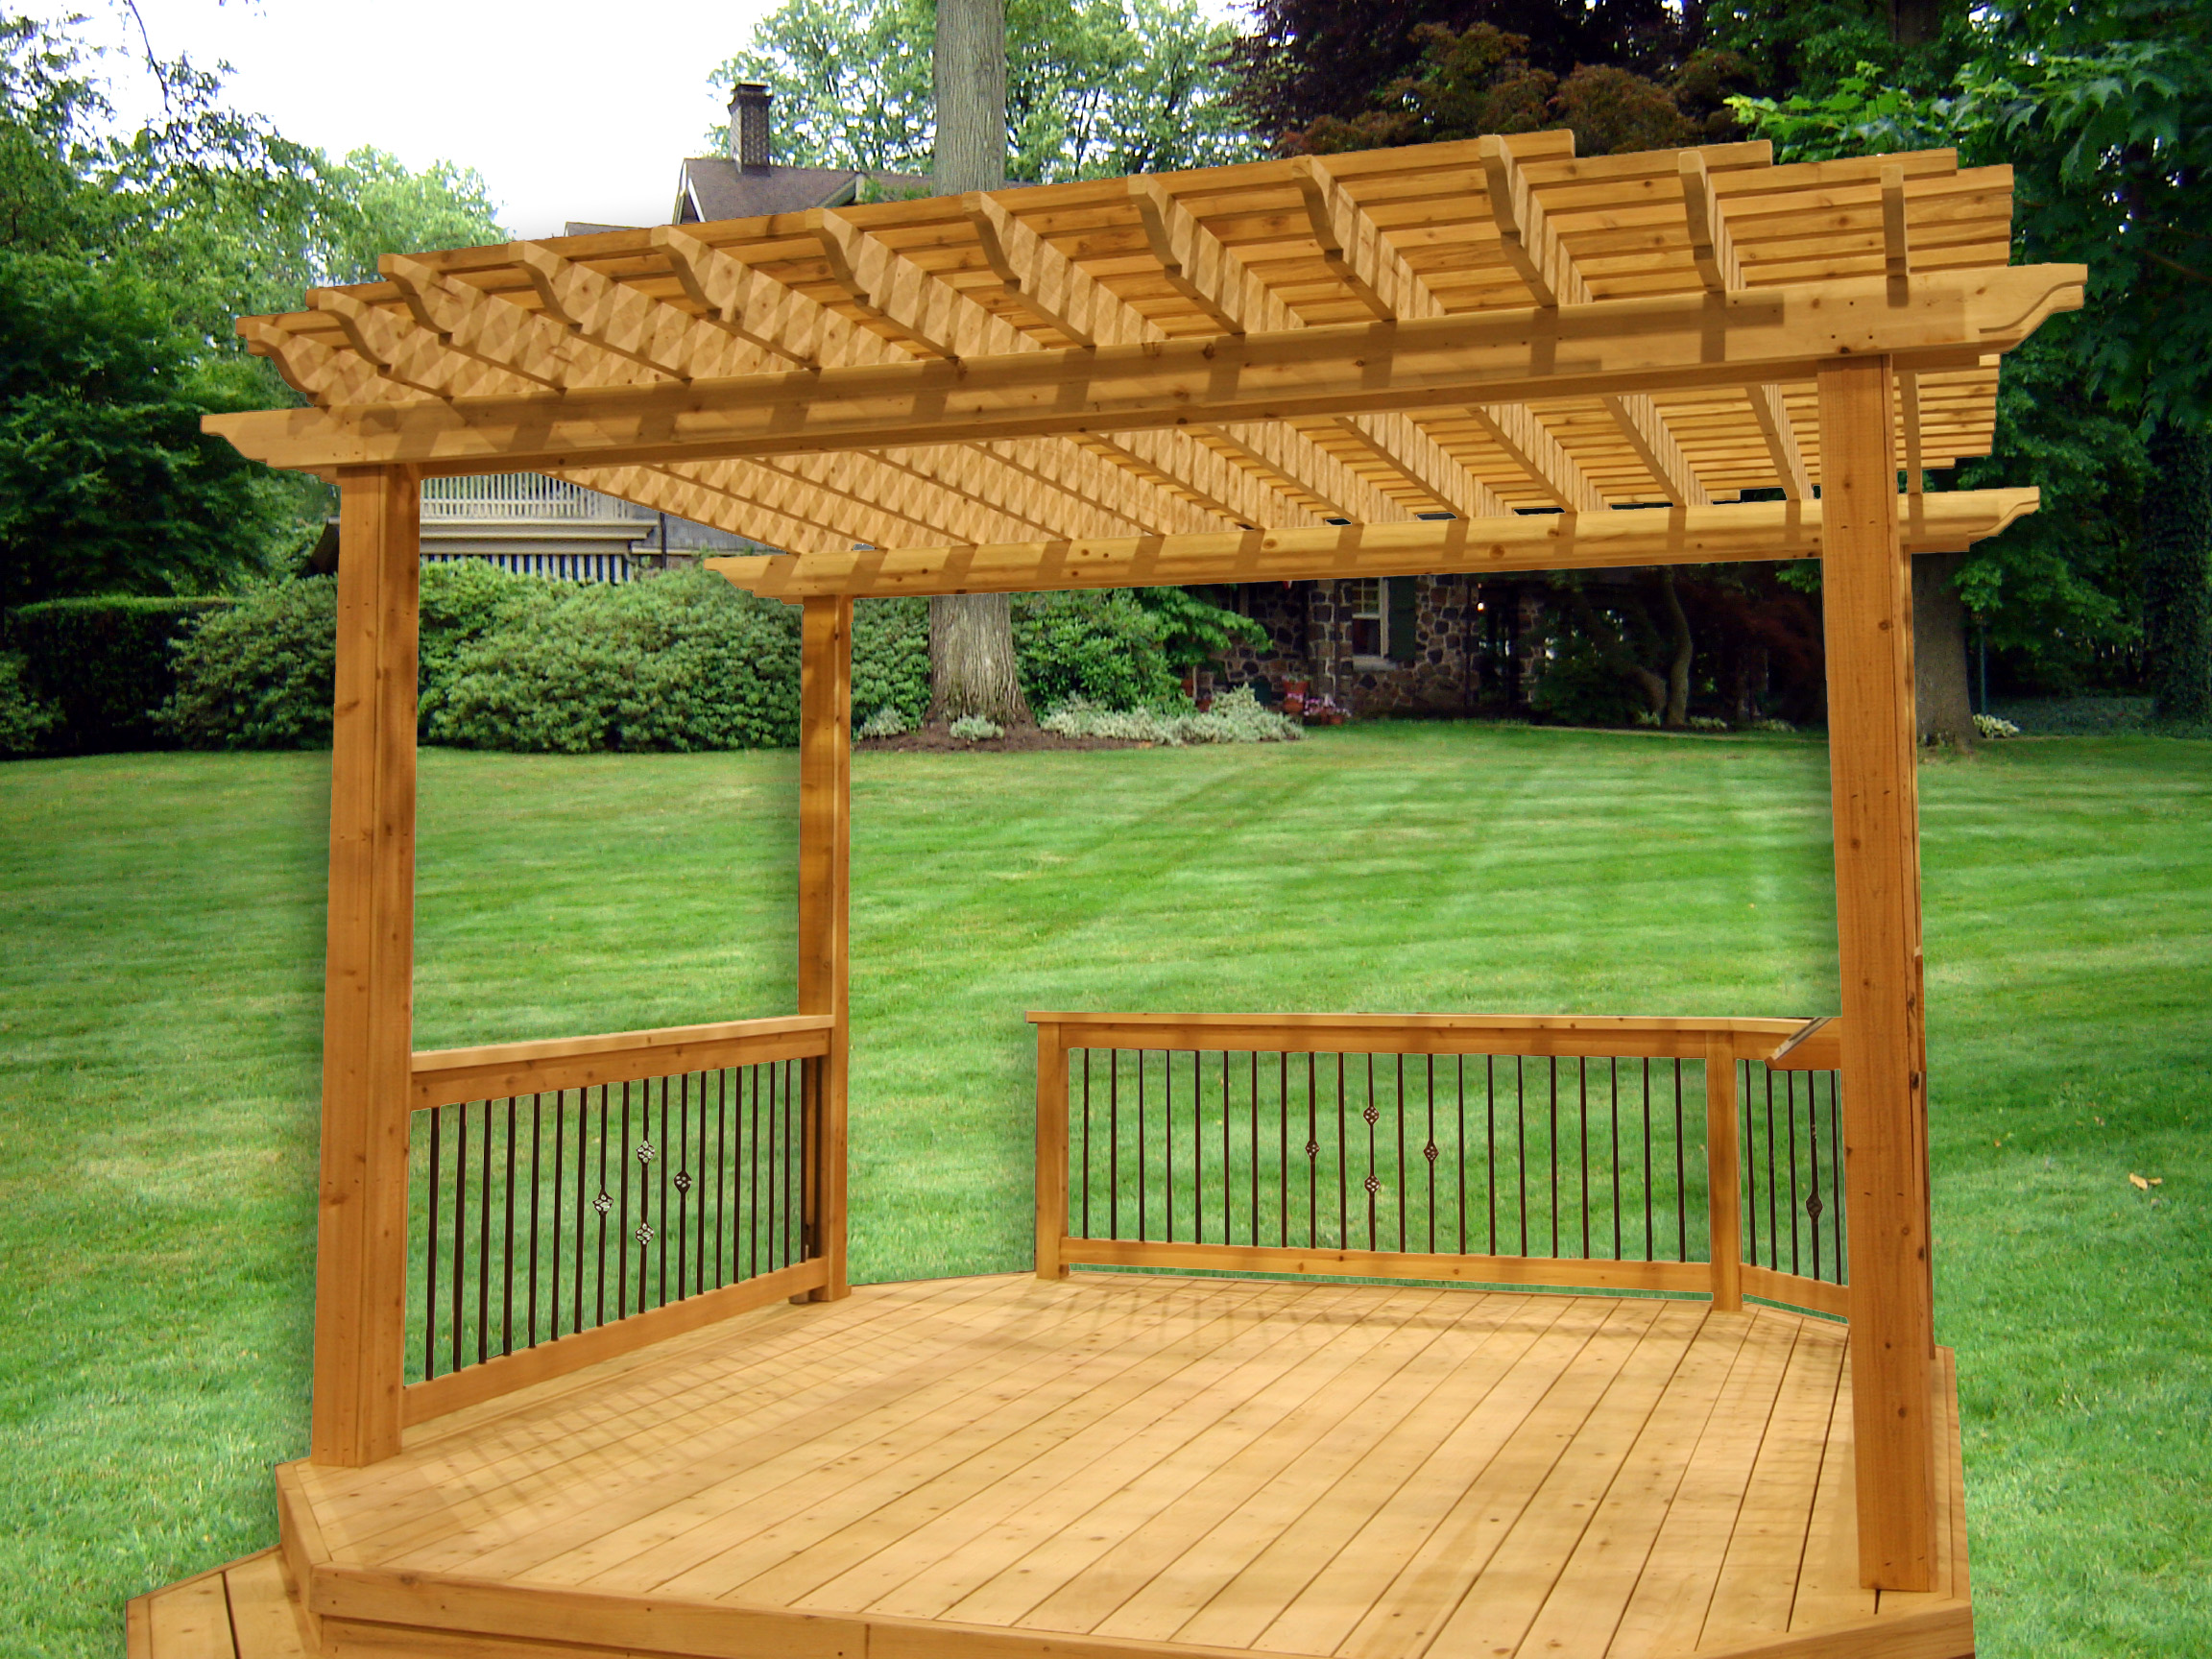 Pergola waterloo structures storage sheds sheds for sale for Pergola designs